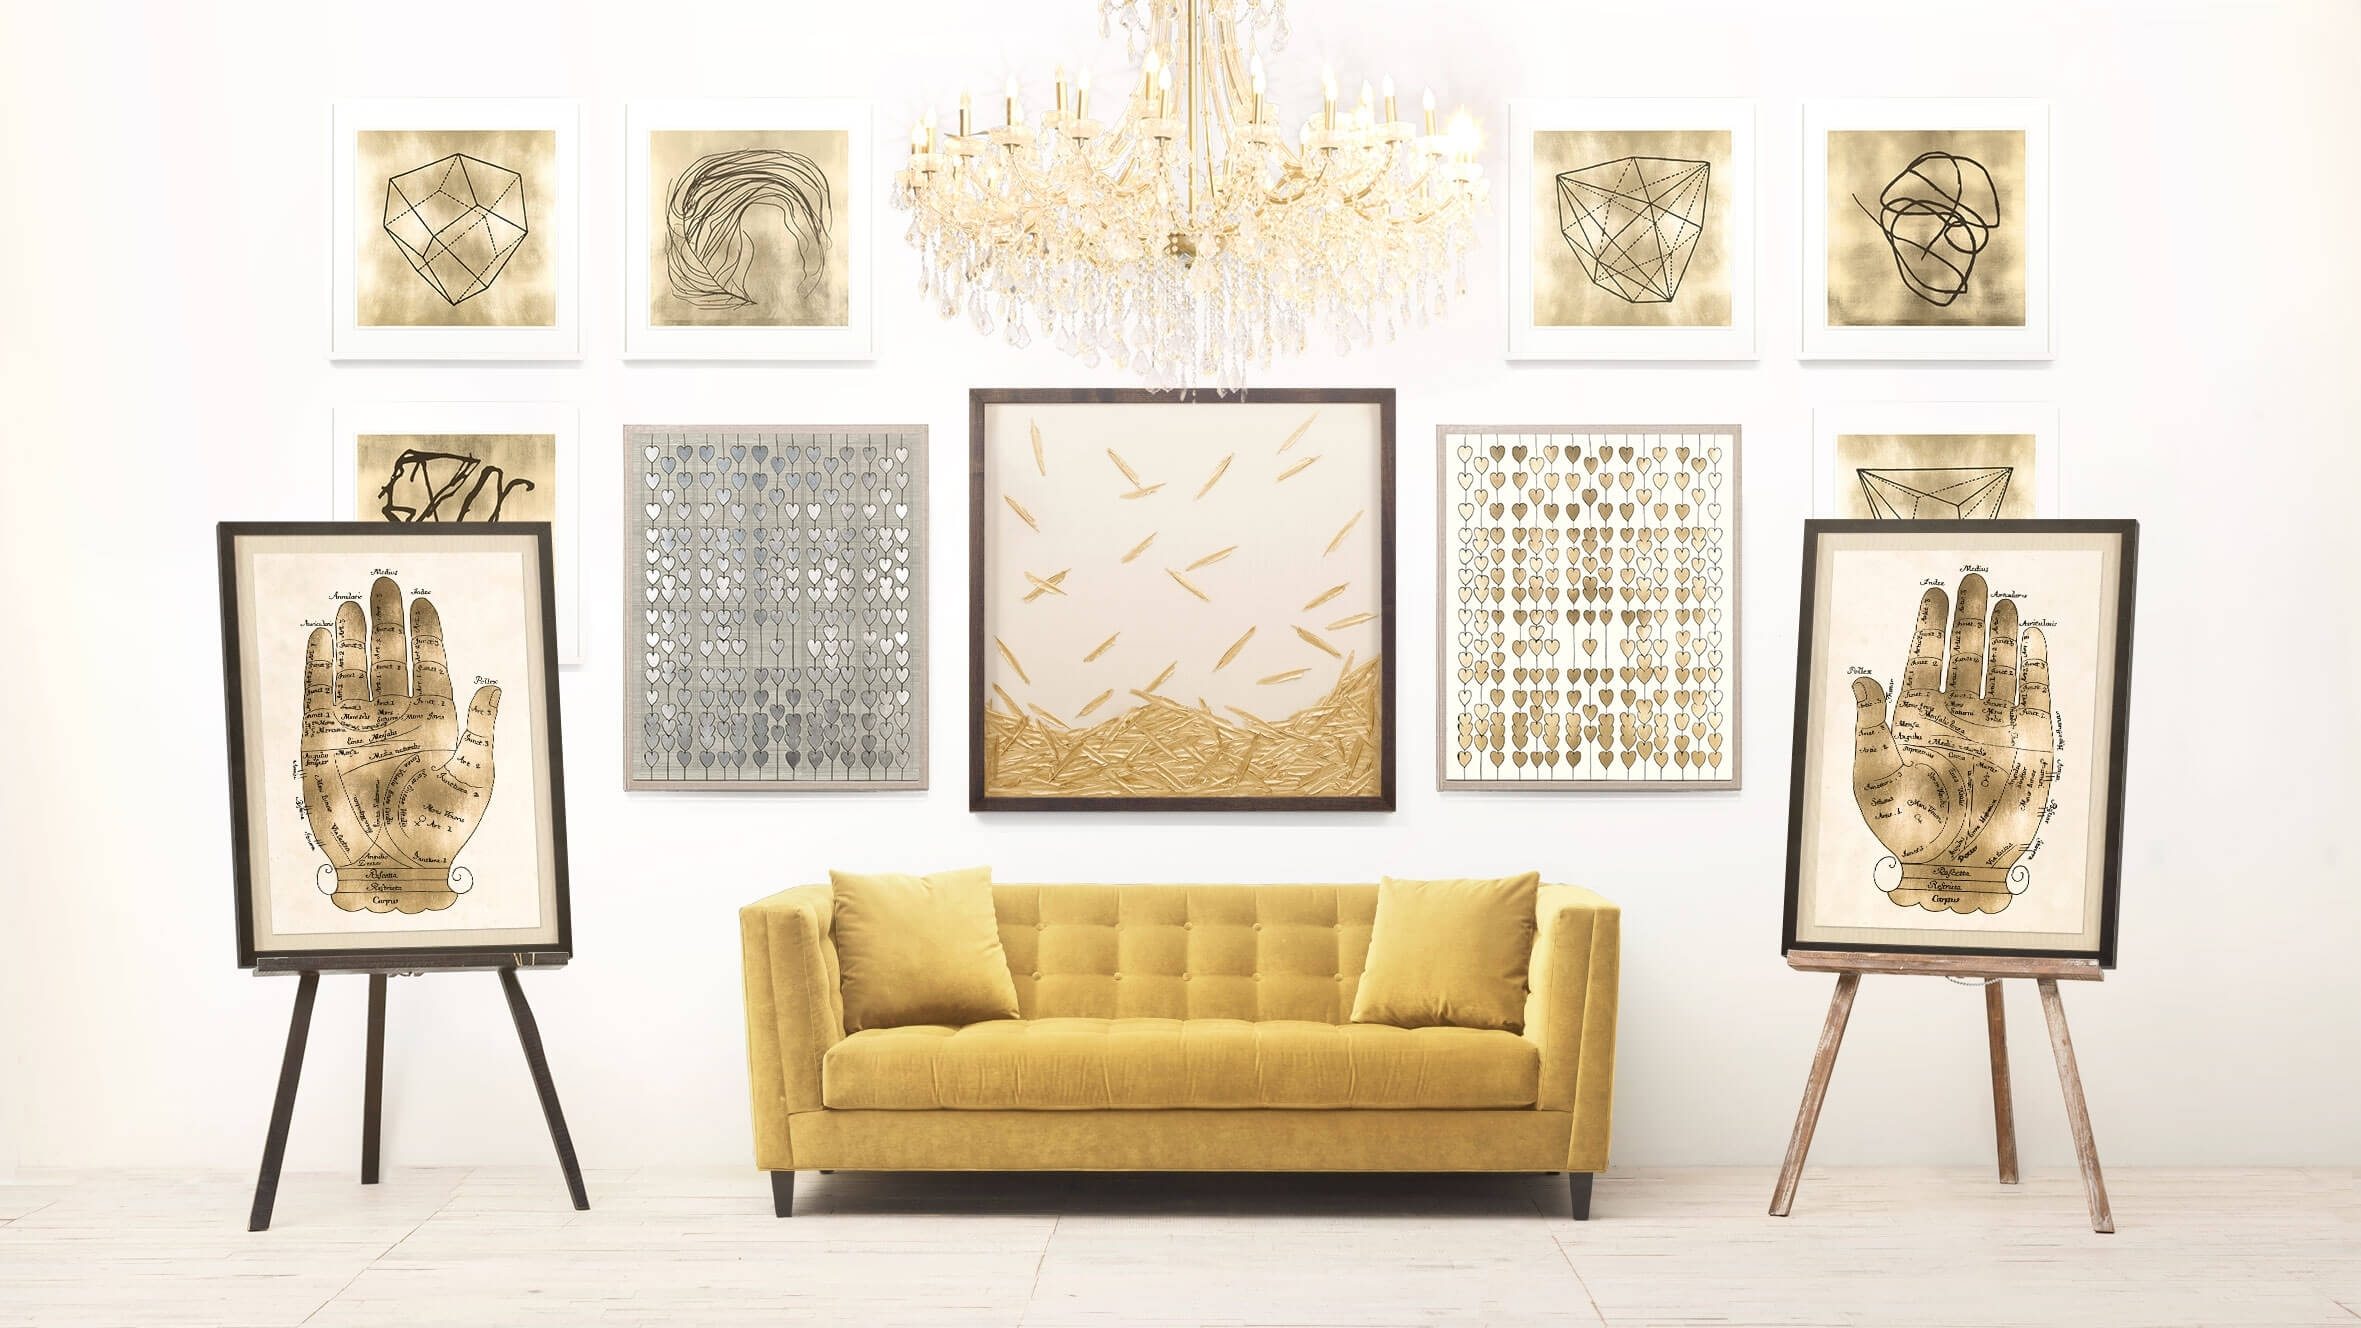 Wall Art Design Ideas: Gold Leaf Wall Art Targetartists Metal Regarding Latest Canvas Wall Art At Target (View 7 of 15)